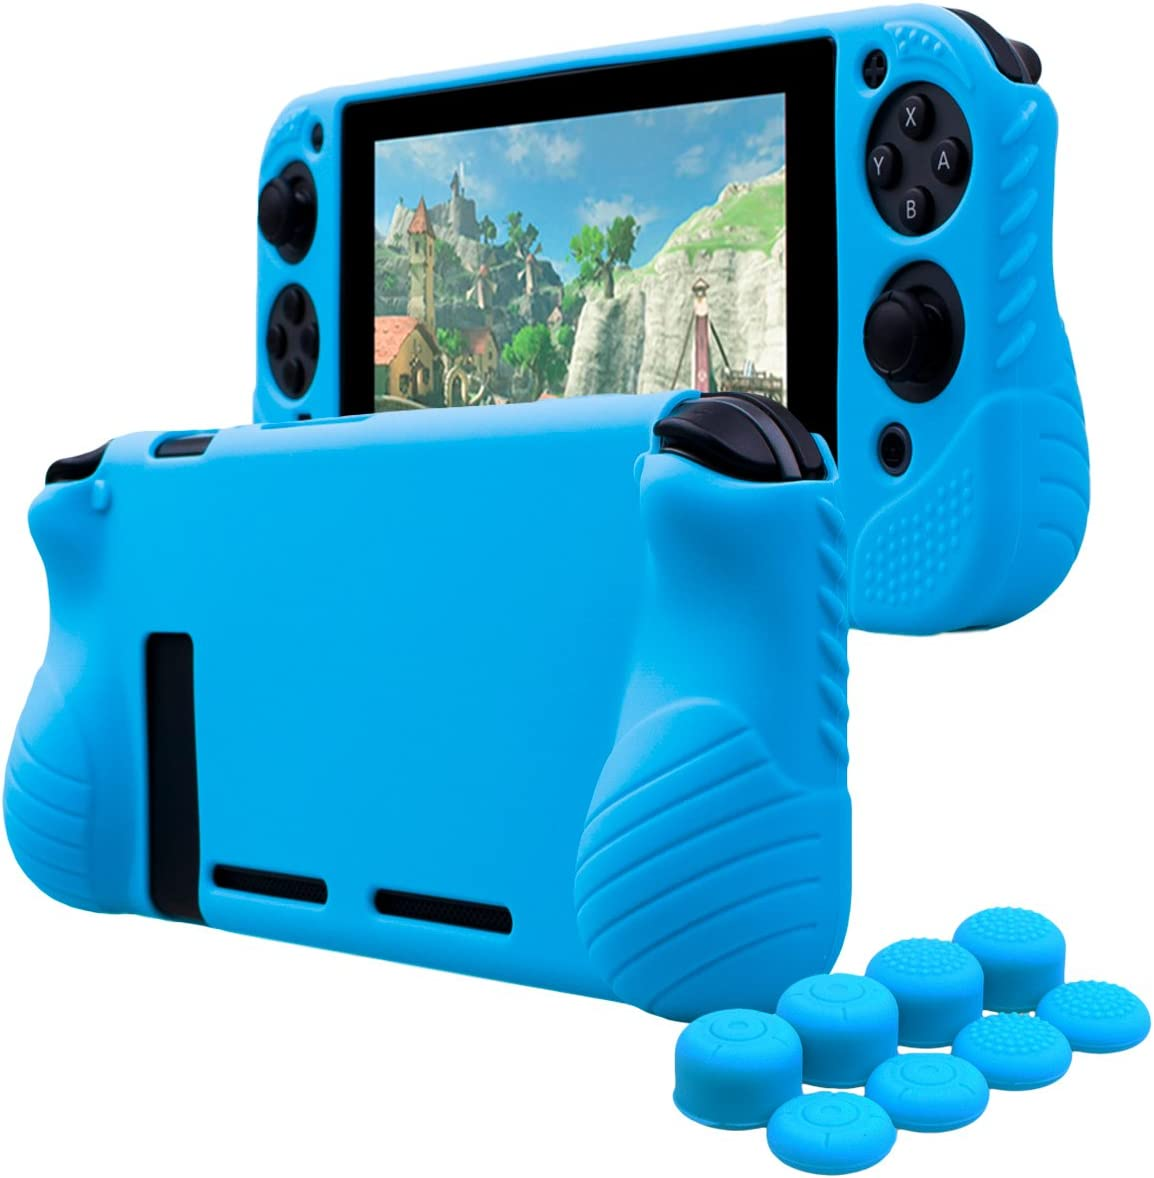 YoRHa Hand Grip No Smell Studded Silicone Cover Skin Case for Switch x 1(Blue) with Joy-Con Thumb Grips x 8